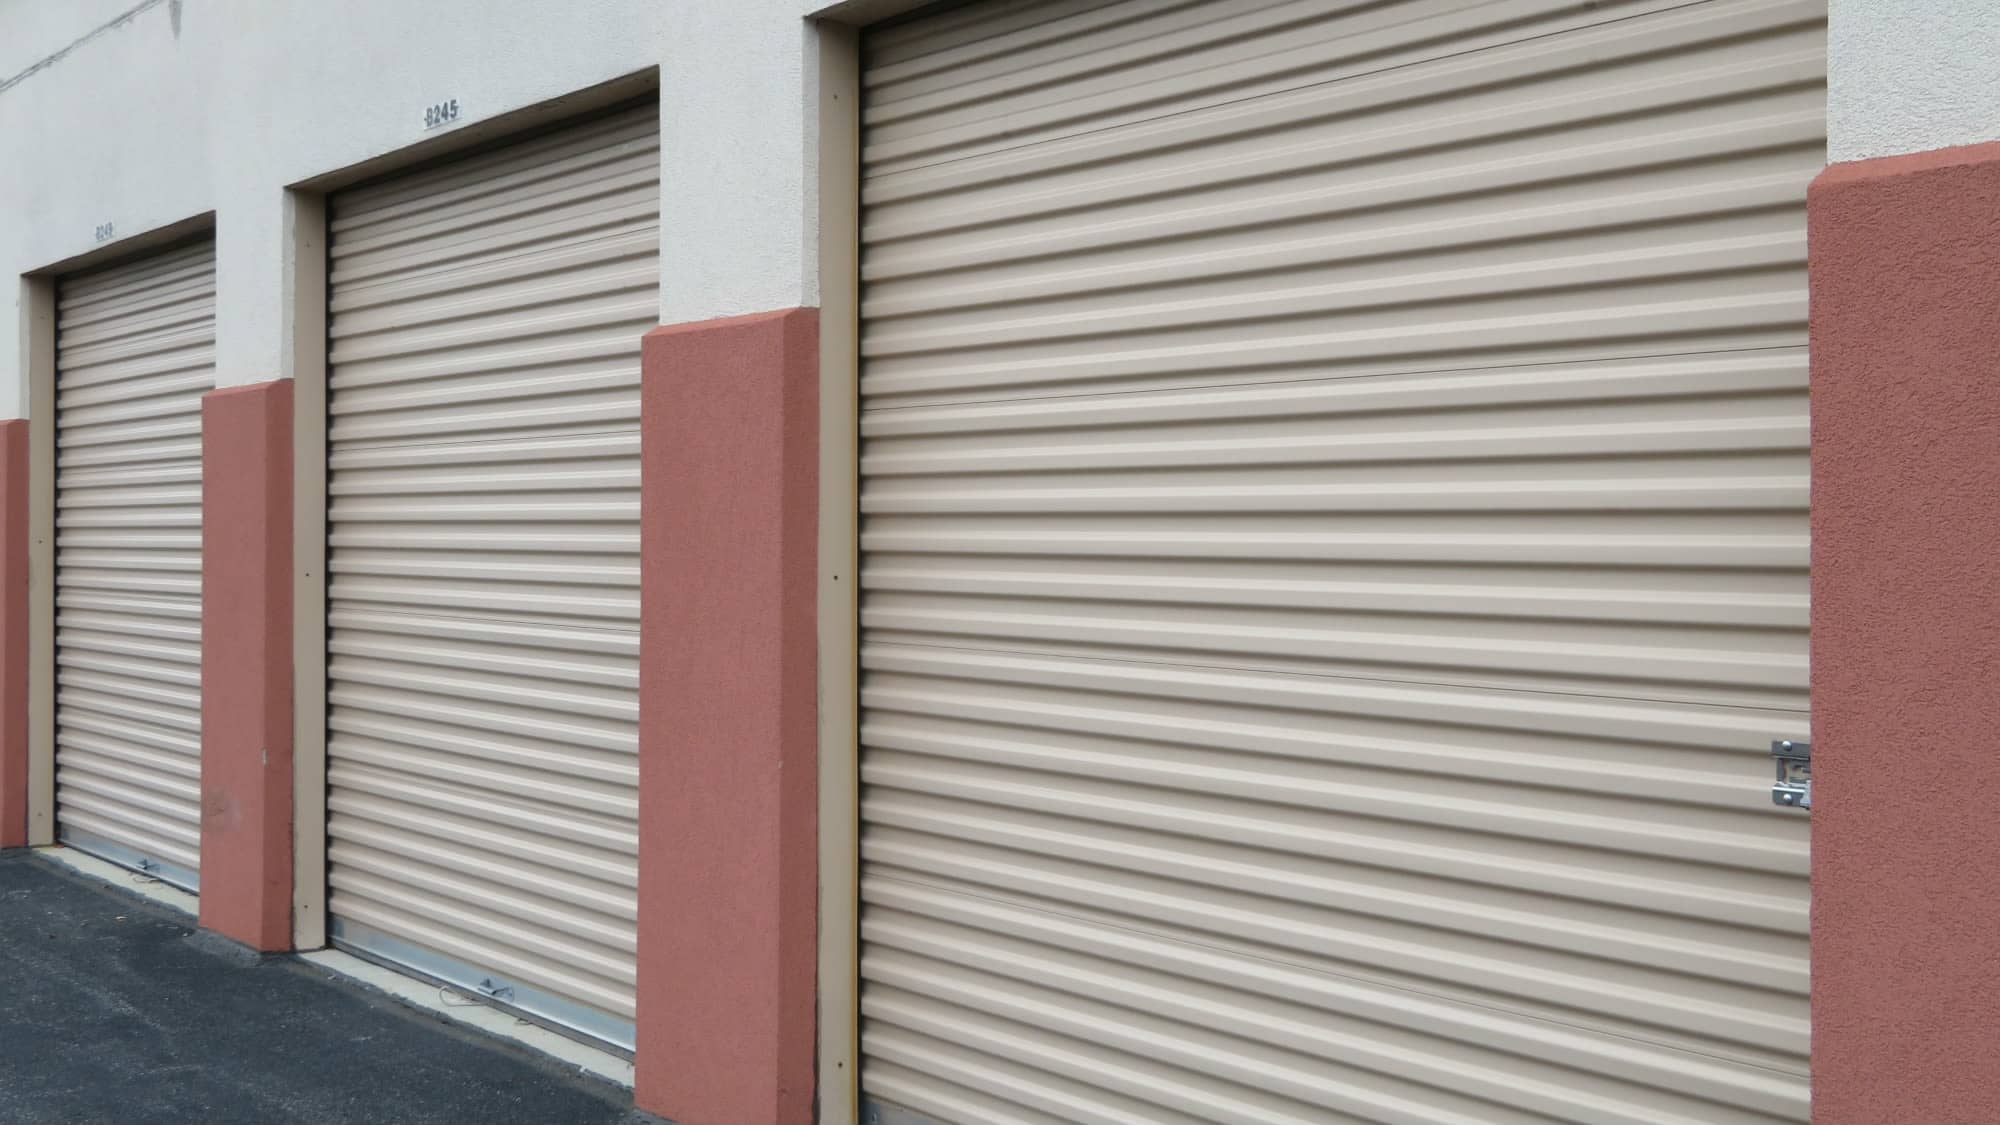 Ground-level units at Odenton Self Storage in Odenton, Maryland